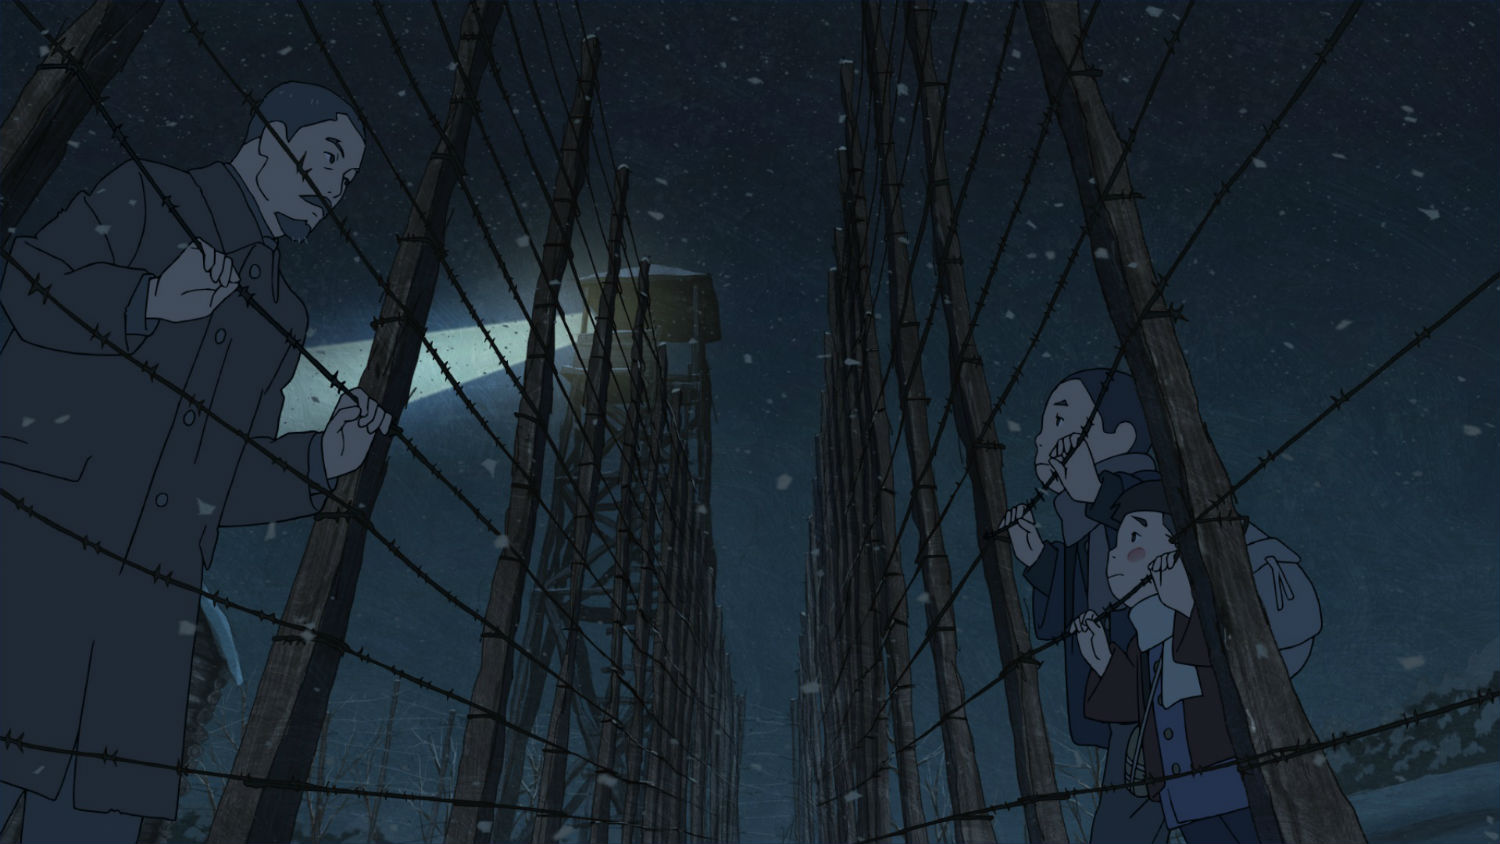 giovanni's island anime prison wire night